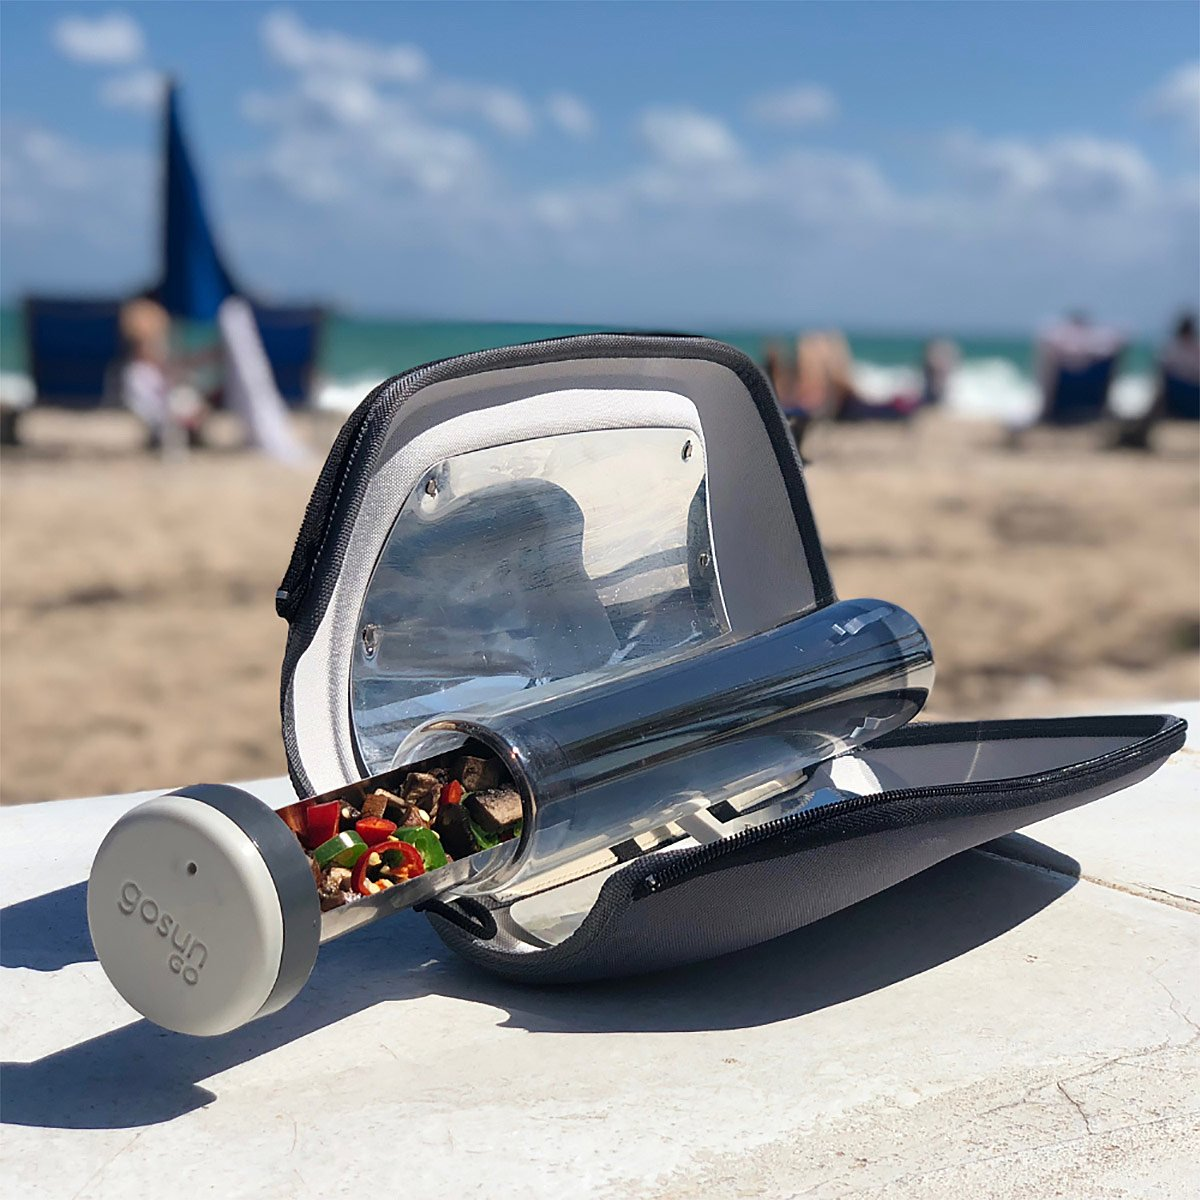 Portable Solar Cooker | UncommonGoods